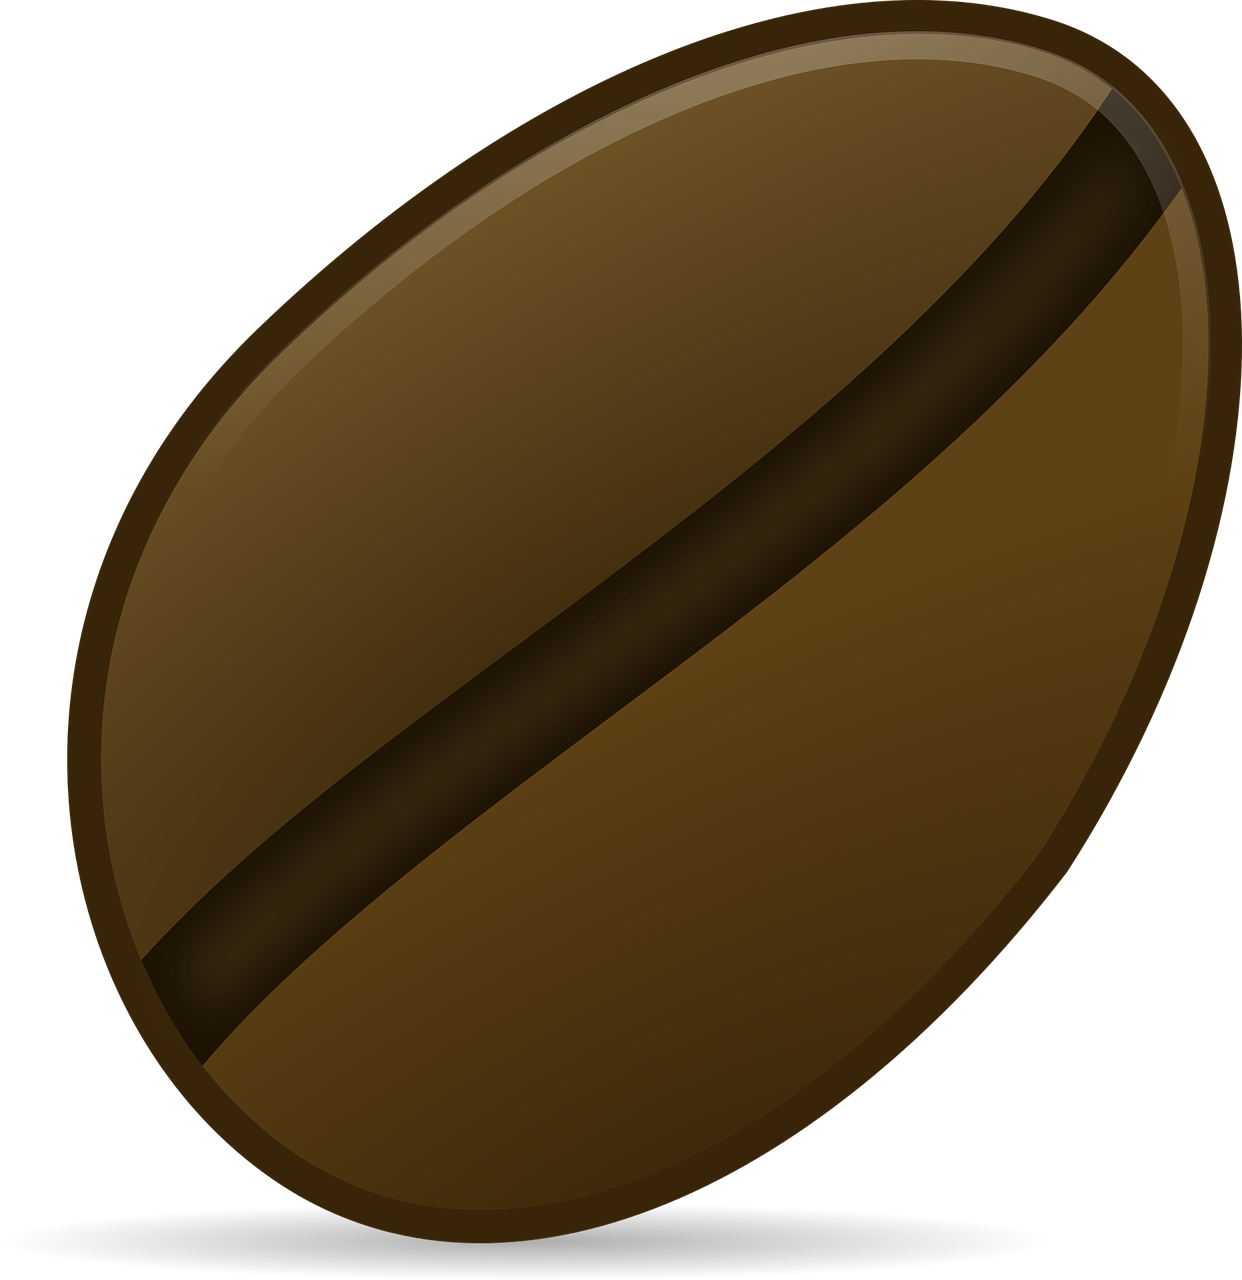 Bean,clipart issue,coffee,icon,icons.